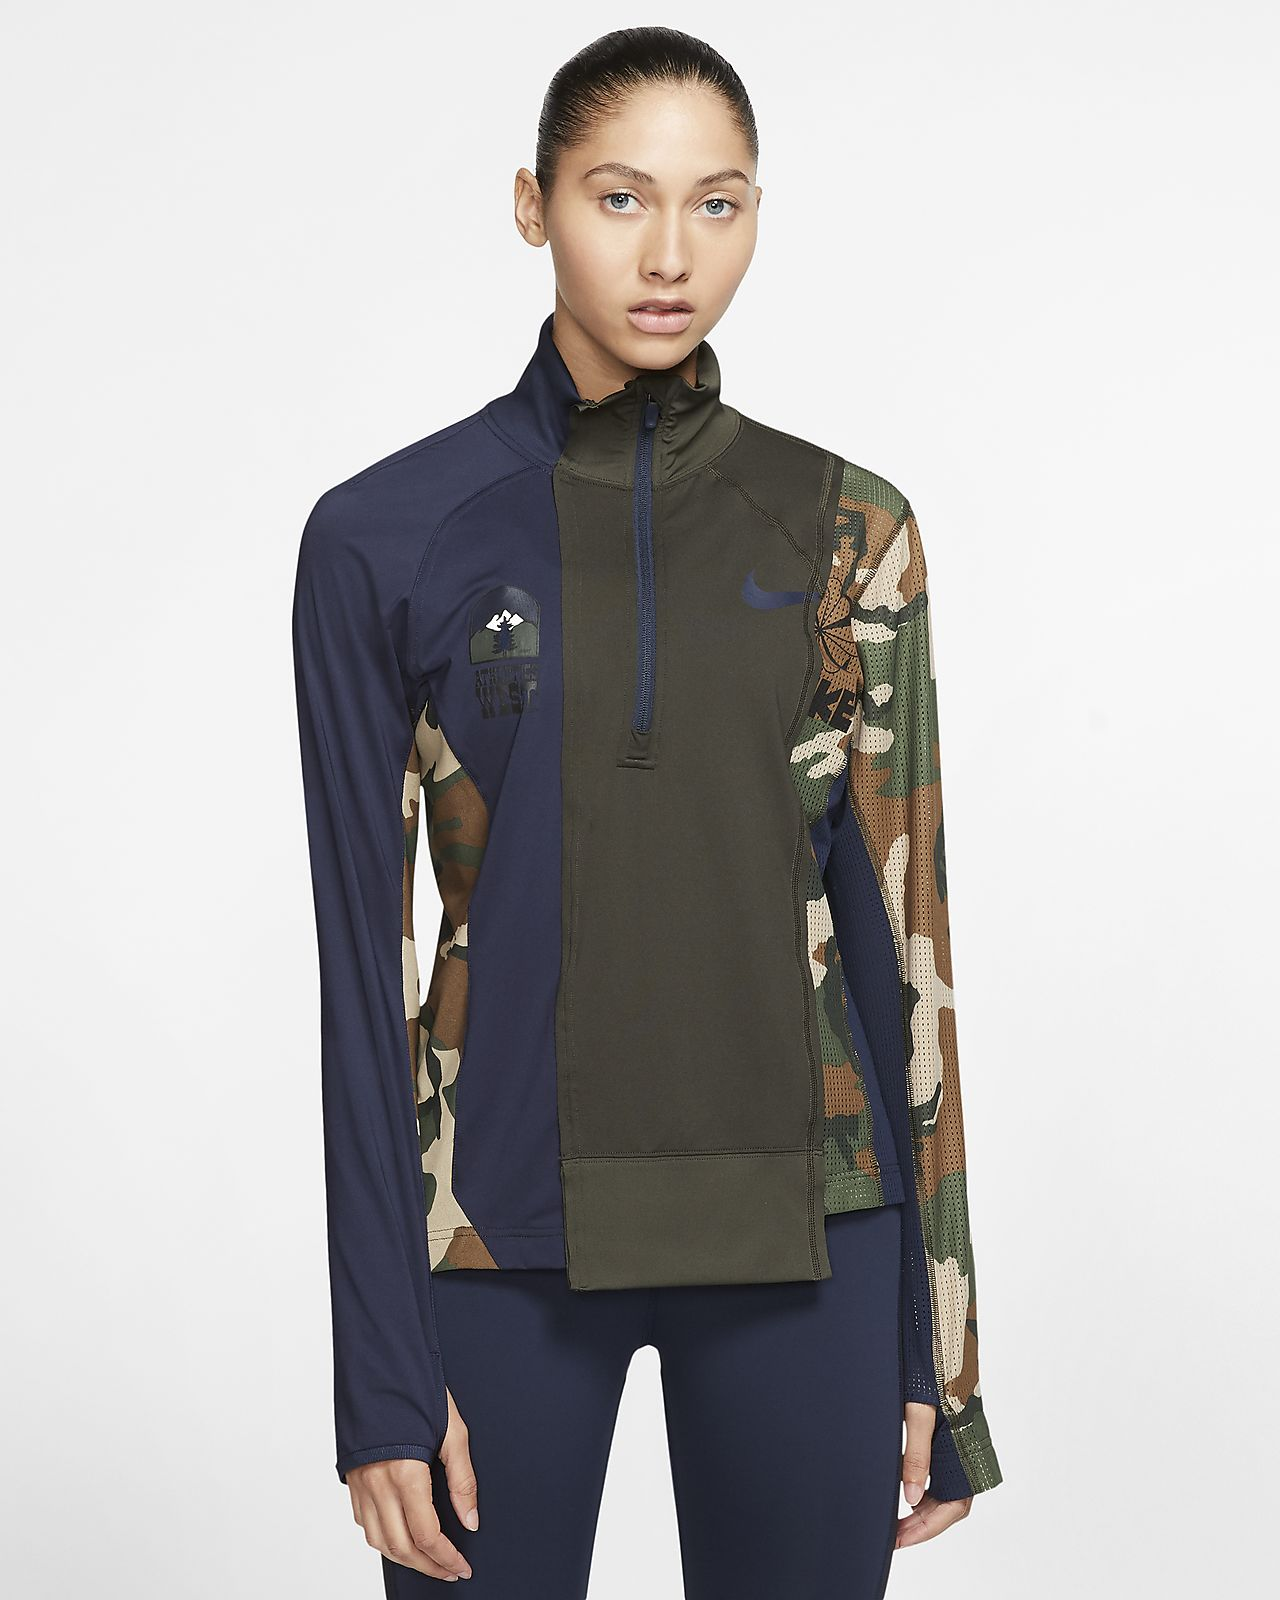 Nike x Sacai Women's Half-Zip Running Jacket